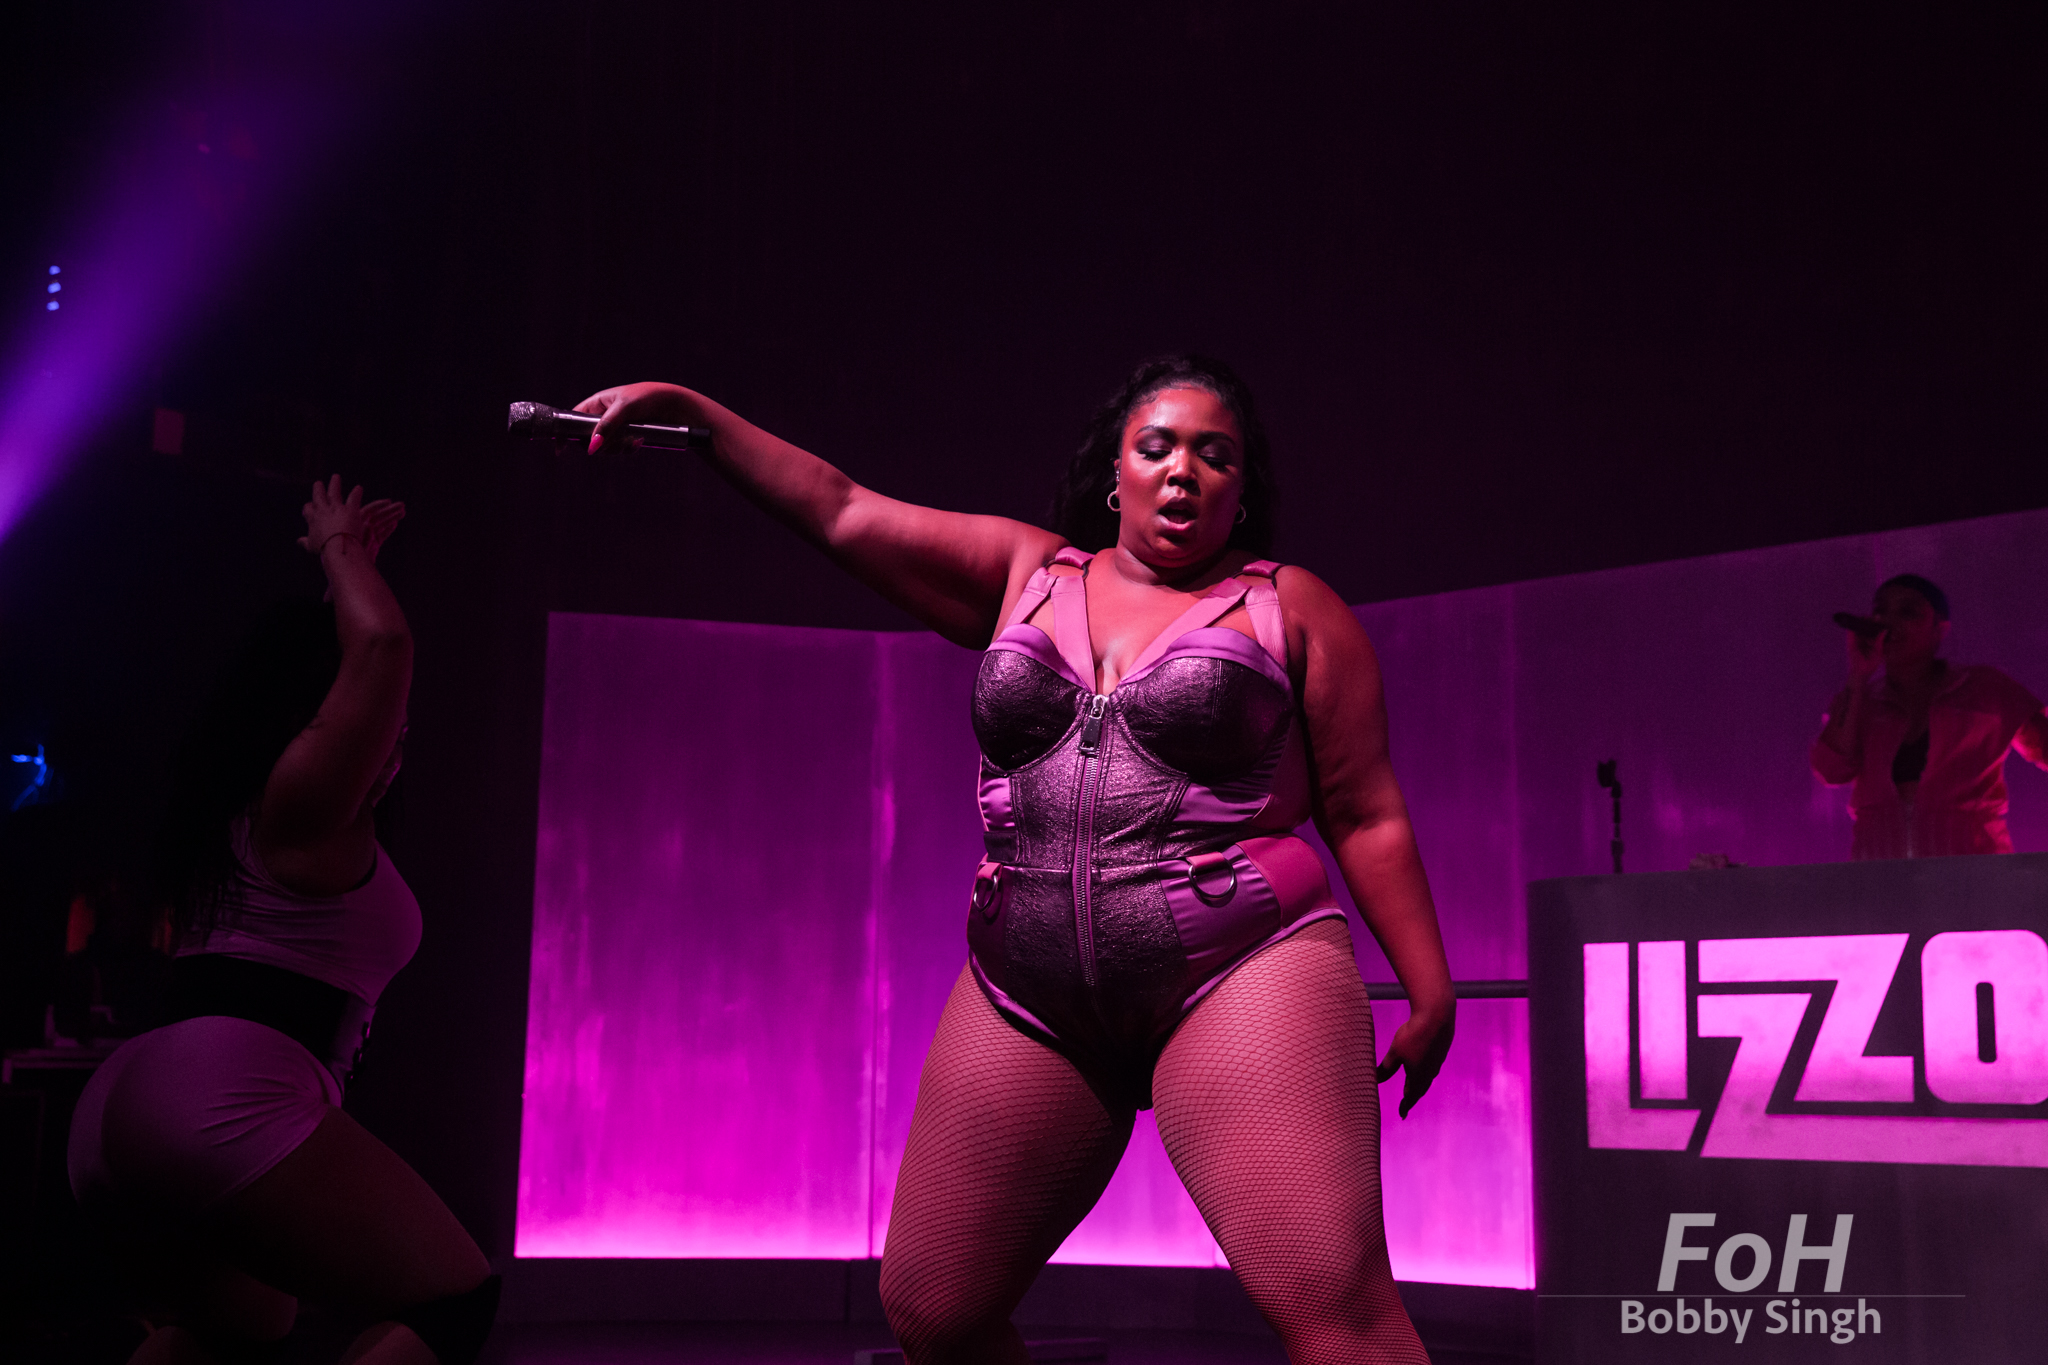 American rapper Lizzo performs at Danforth Music Hall in Toronto, CANADA.